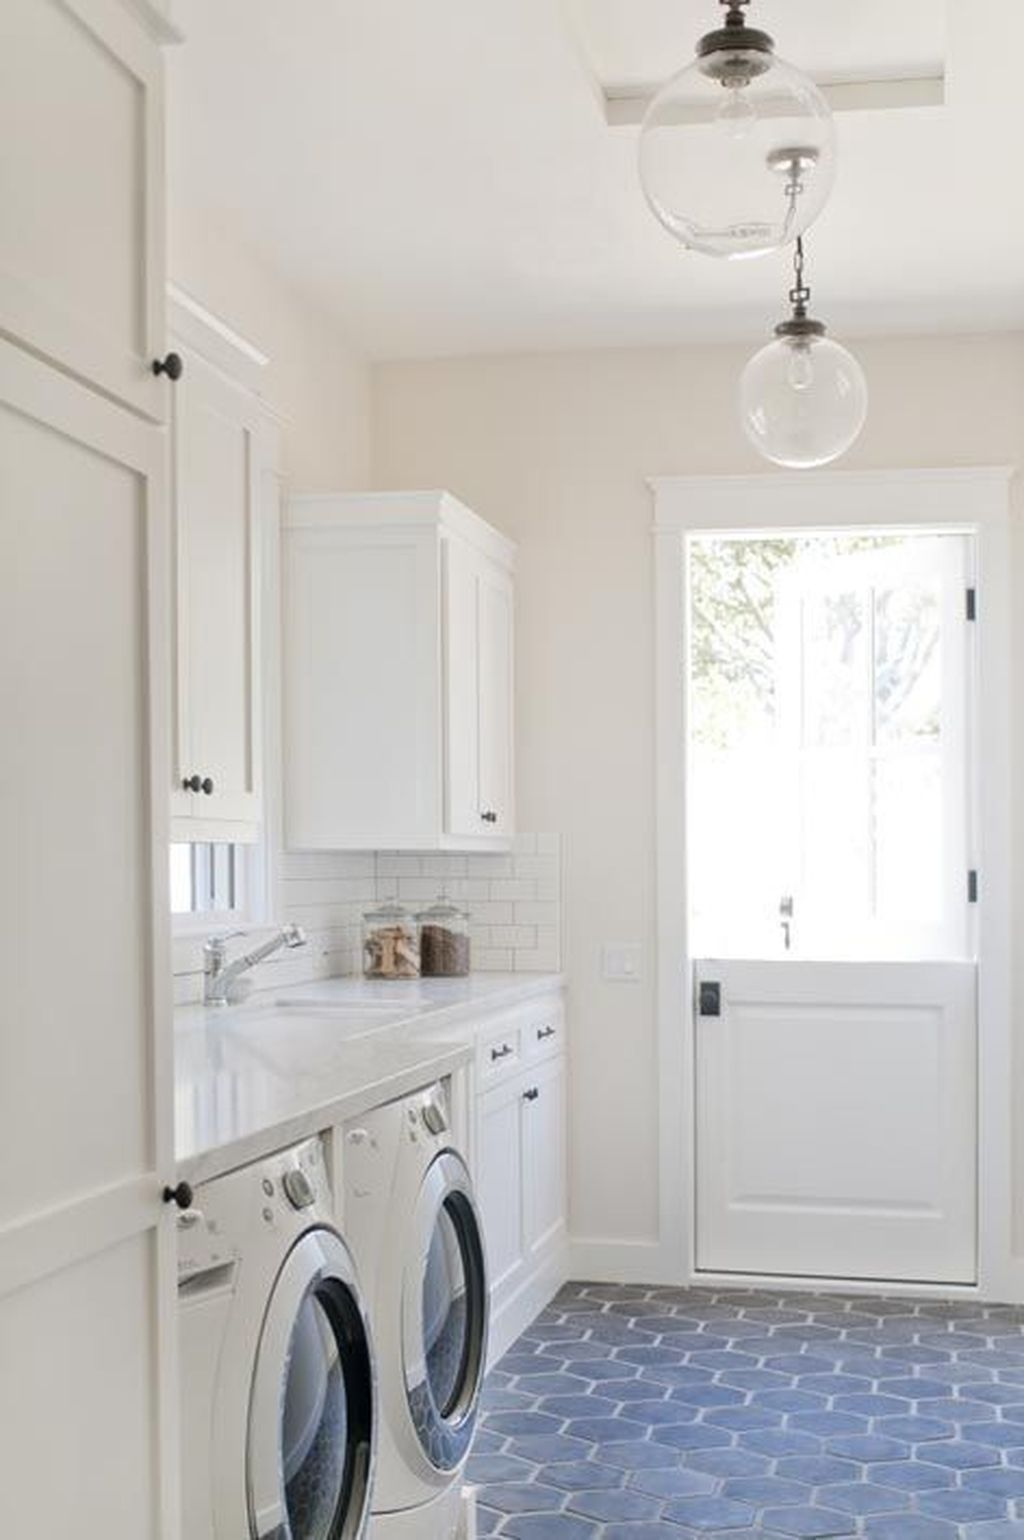 Inspiring Small Laundry Room Design And Decor Ideas 31